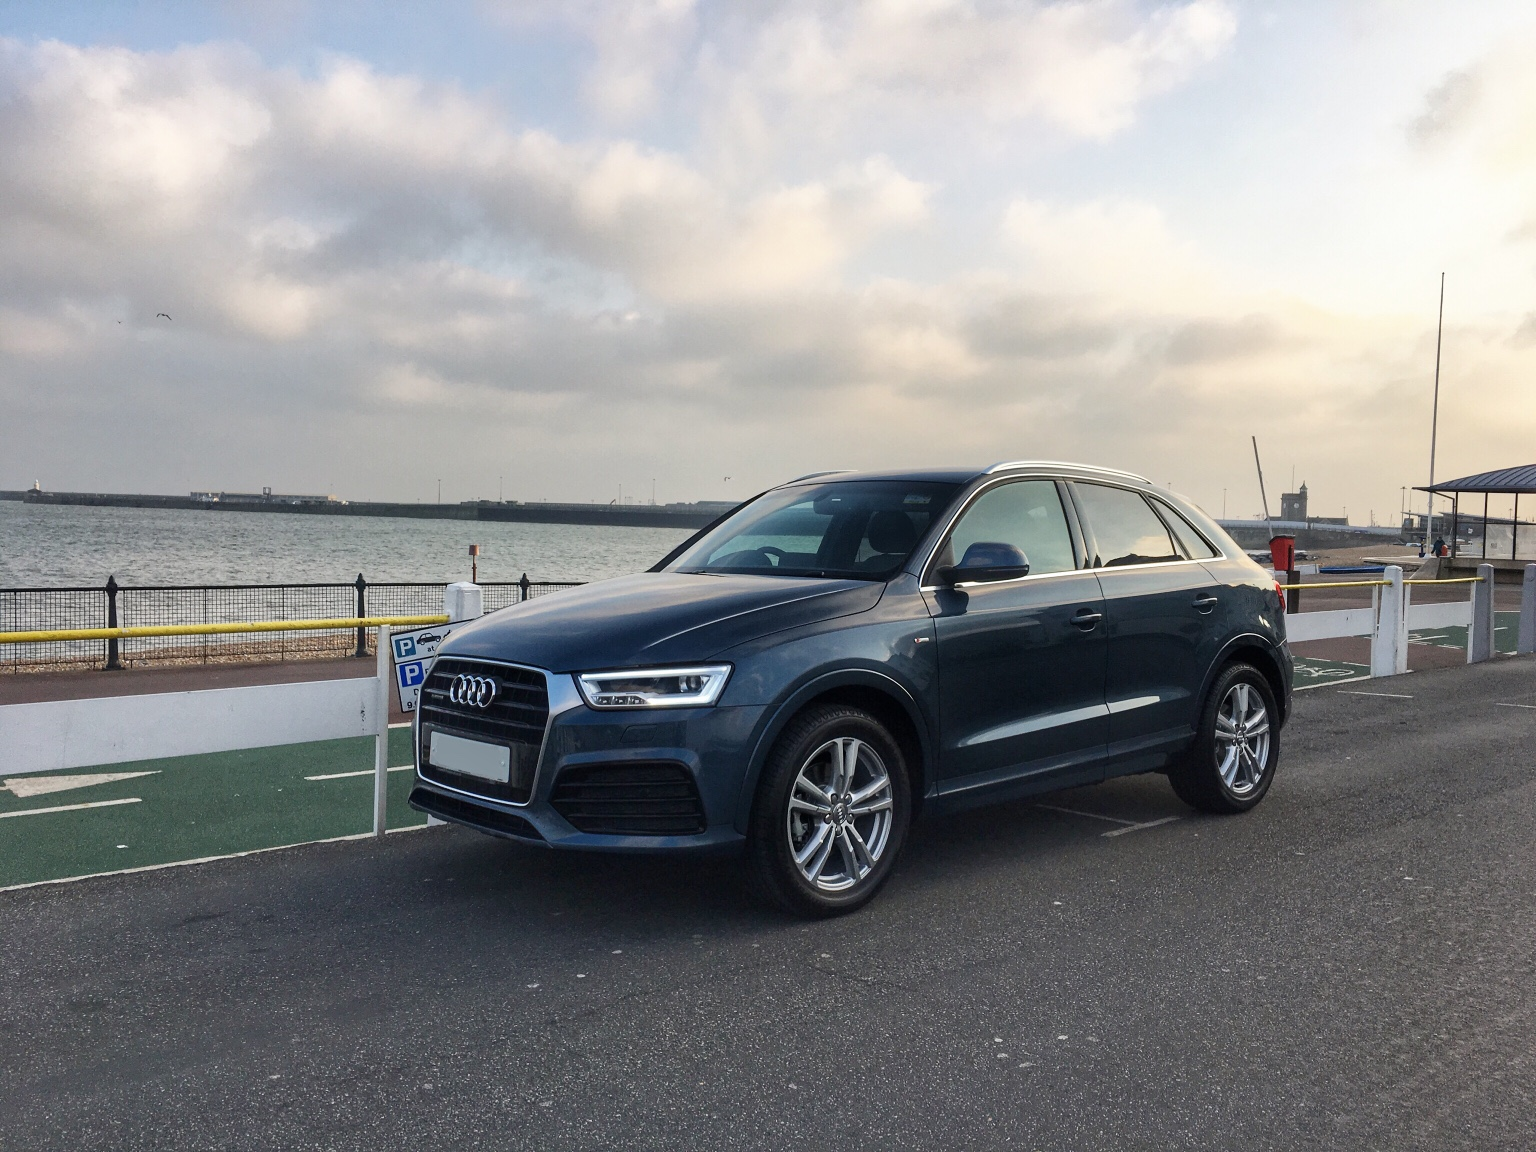 audi q3 forum utopia blue picture thread